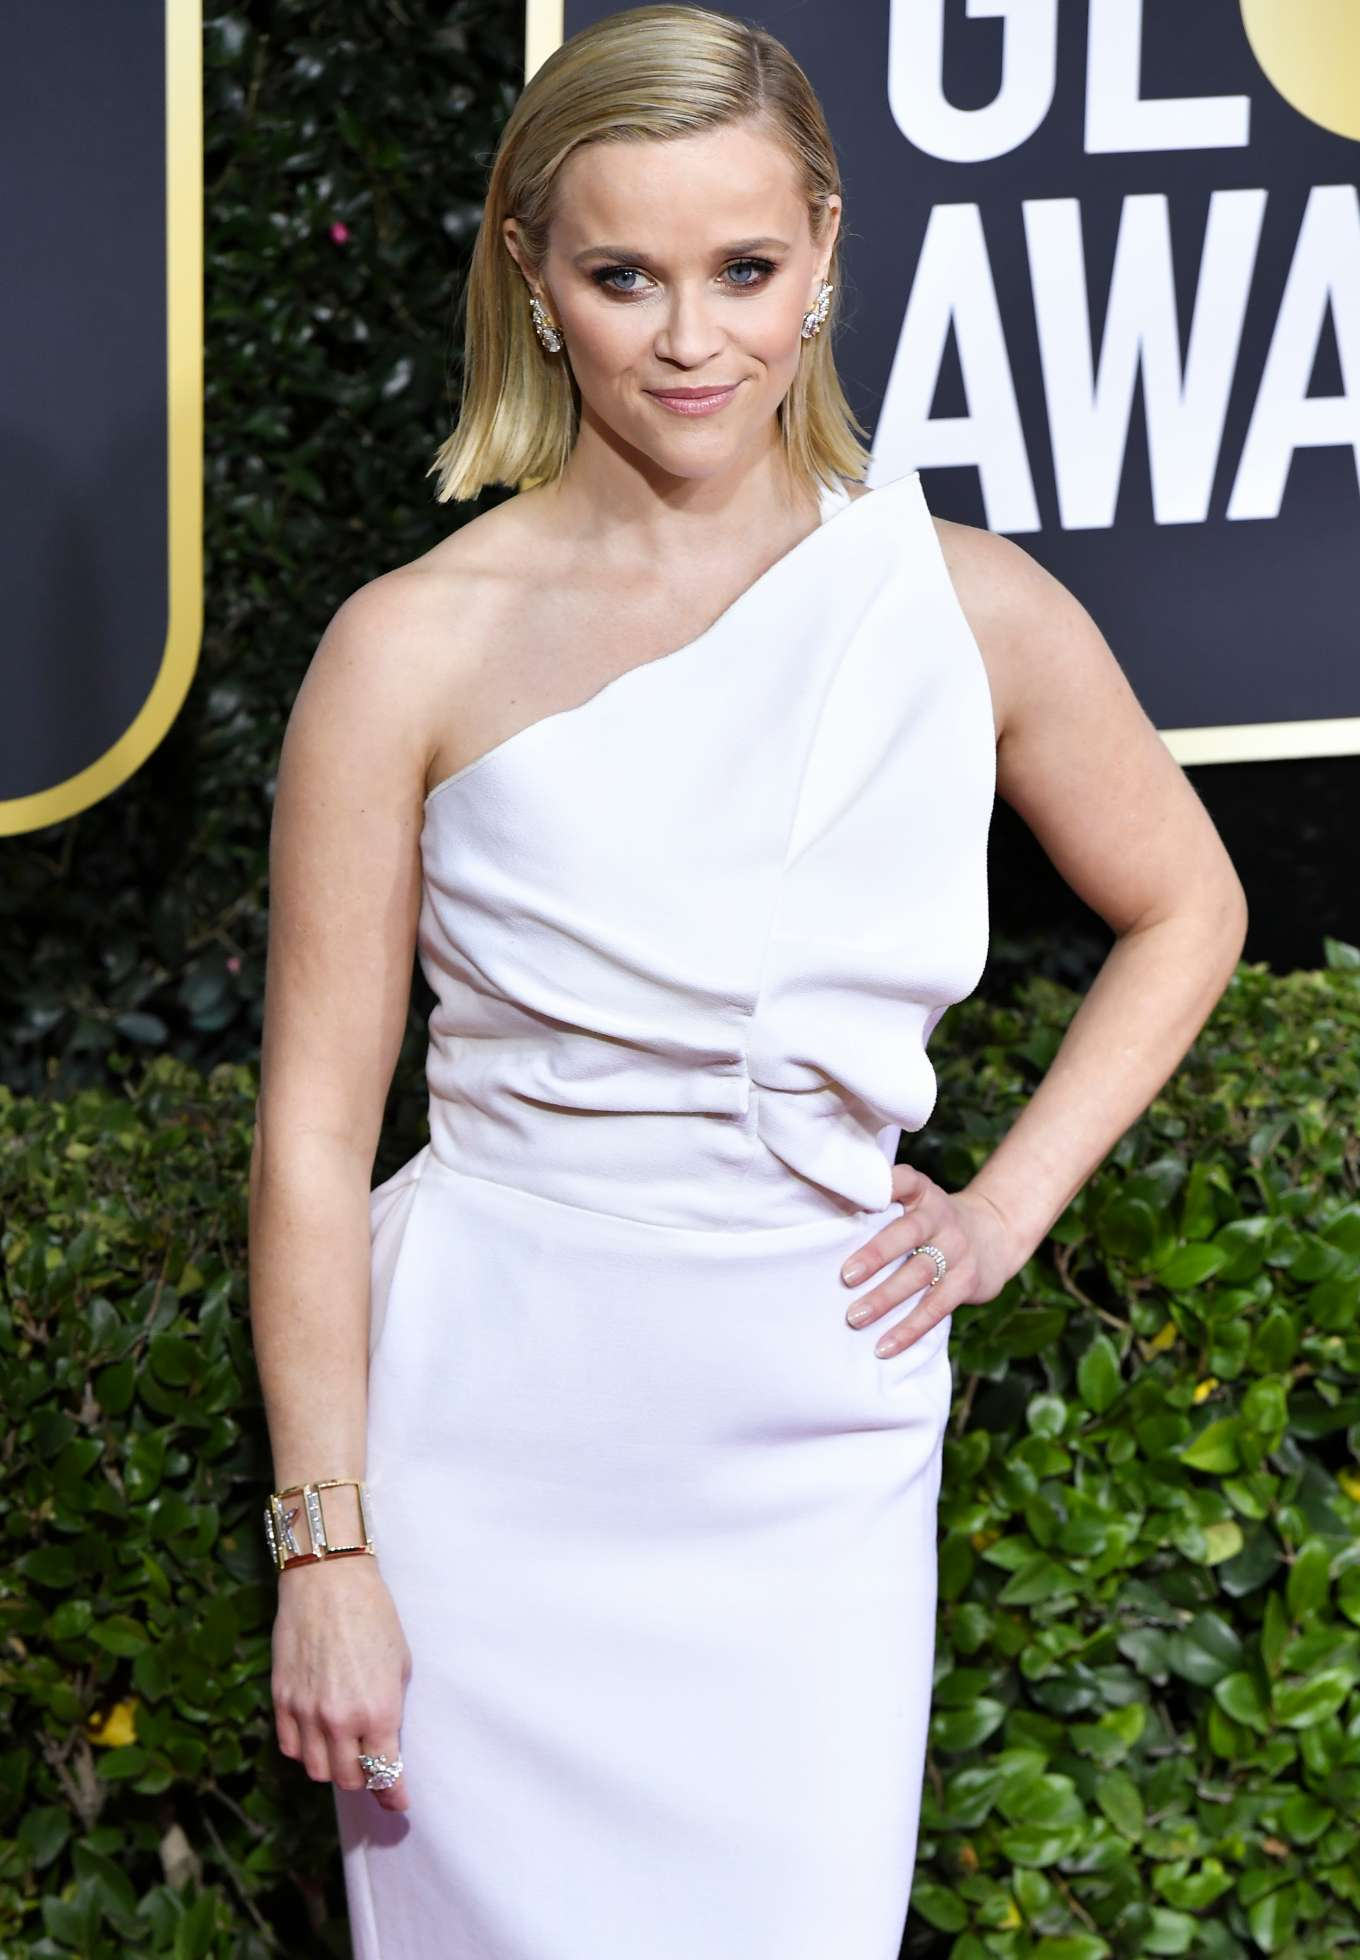 Reese Witherspoon - 2020 Golden Globe Awards in Beverly Hills